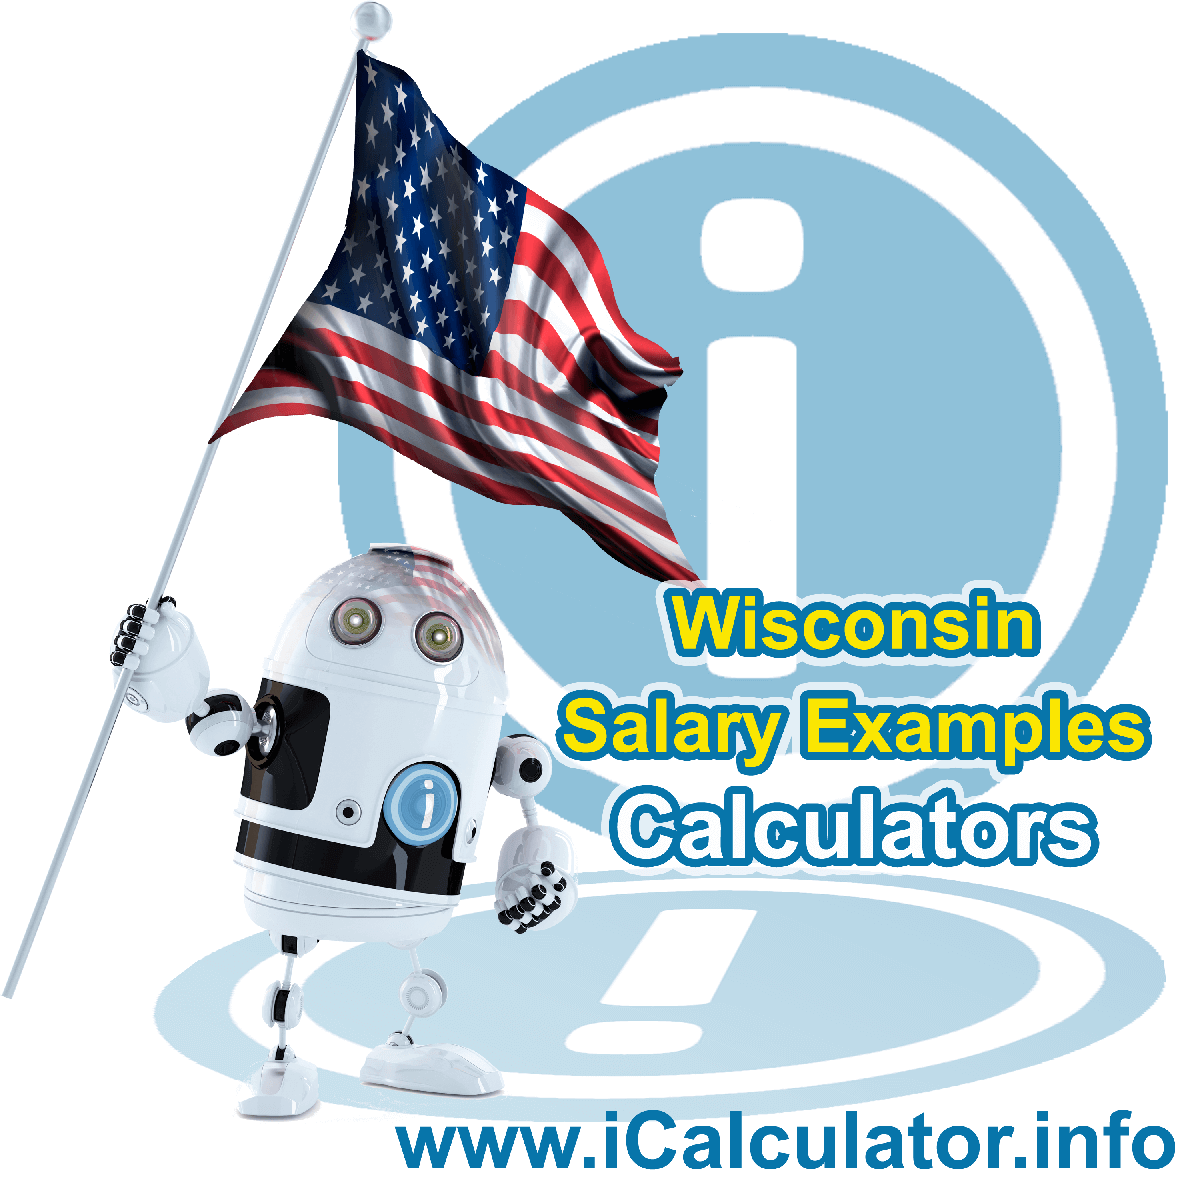 Wisconsin Salary Example for $80.00 in 2020 | iCalculator | $80.00 salary example for employee and employer paying Wisconsin State tincome taxes. Detailed salary after tax calculation including Wisconsin State Tax, Federal State Tax, Medicare Deductions, Social Security, Capital Gains and other income tax and salary deductions complete with supporting Wisconsin state tax tables